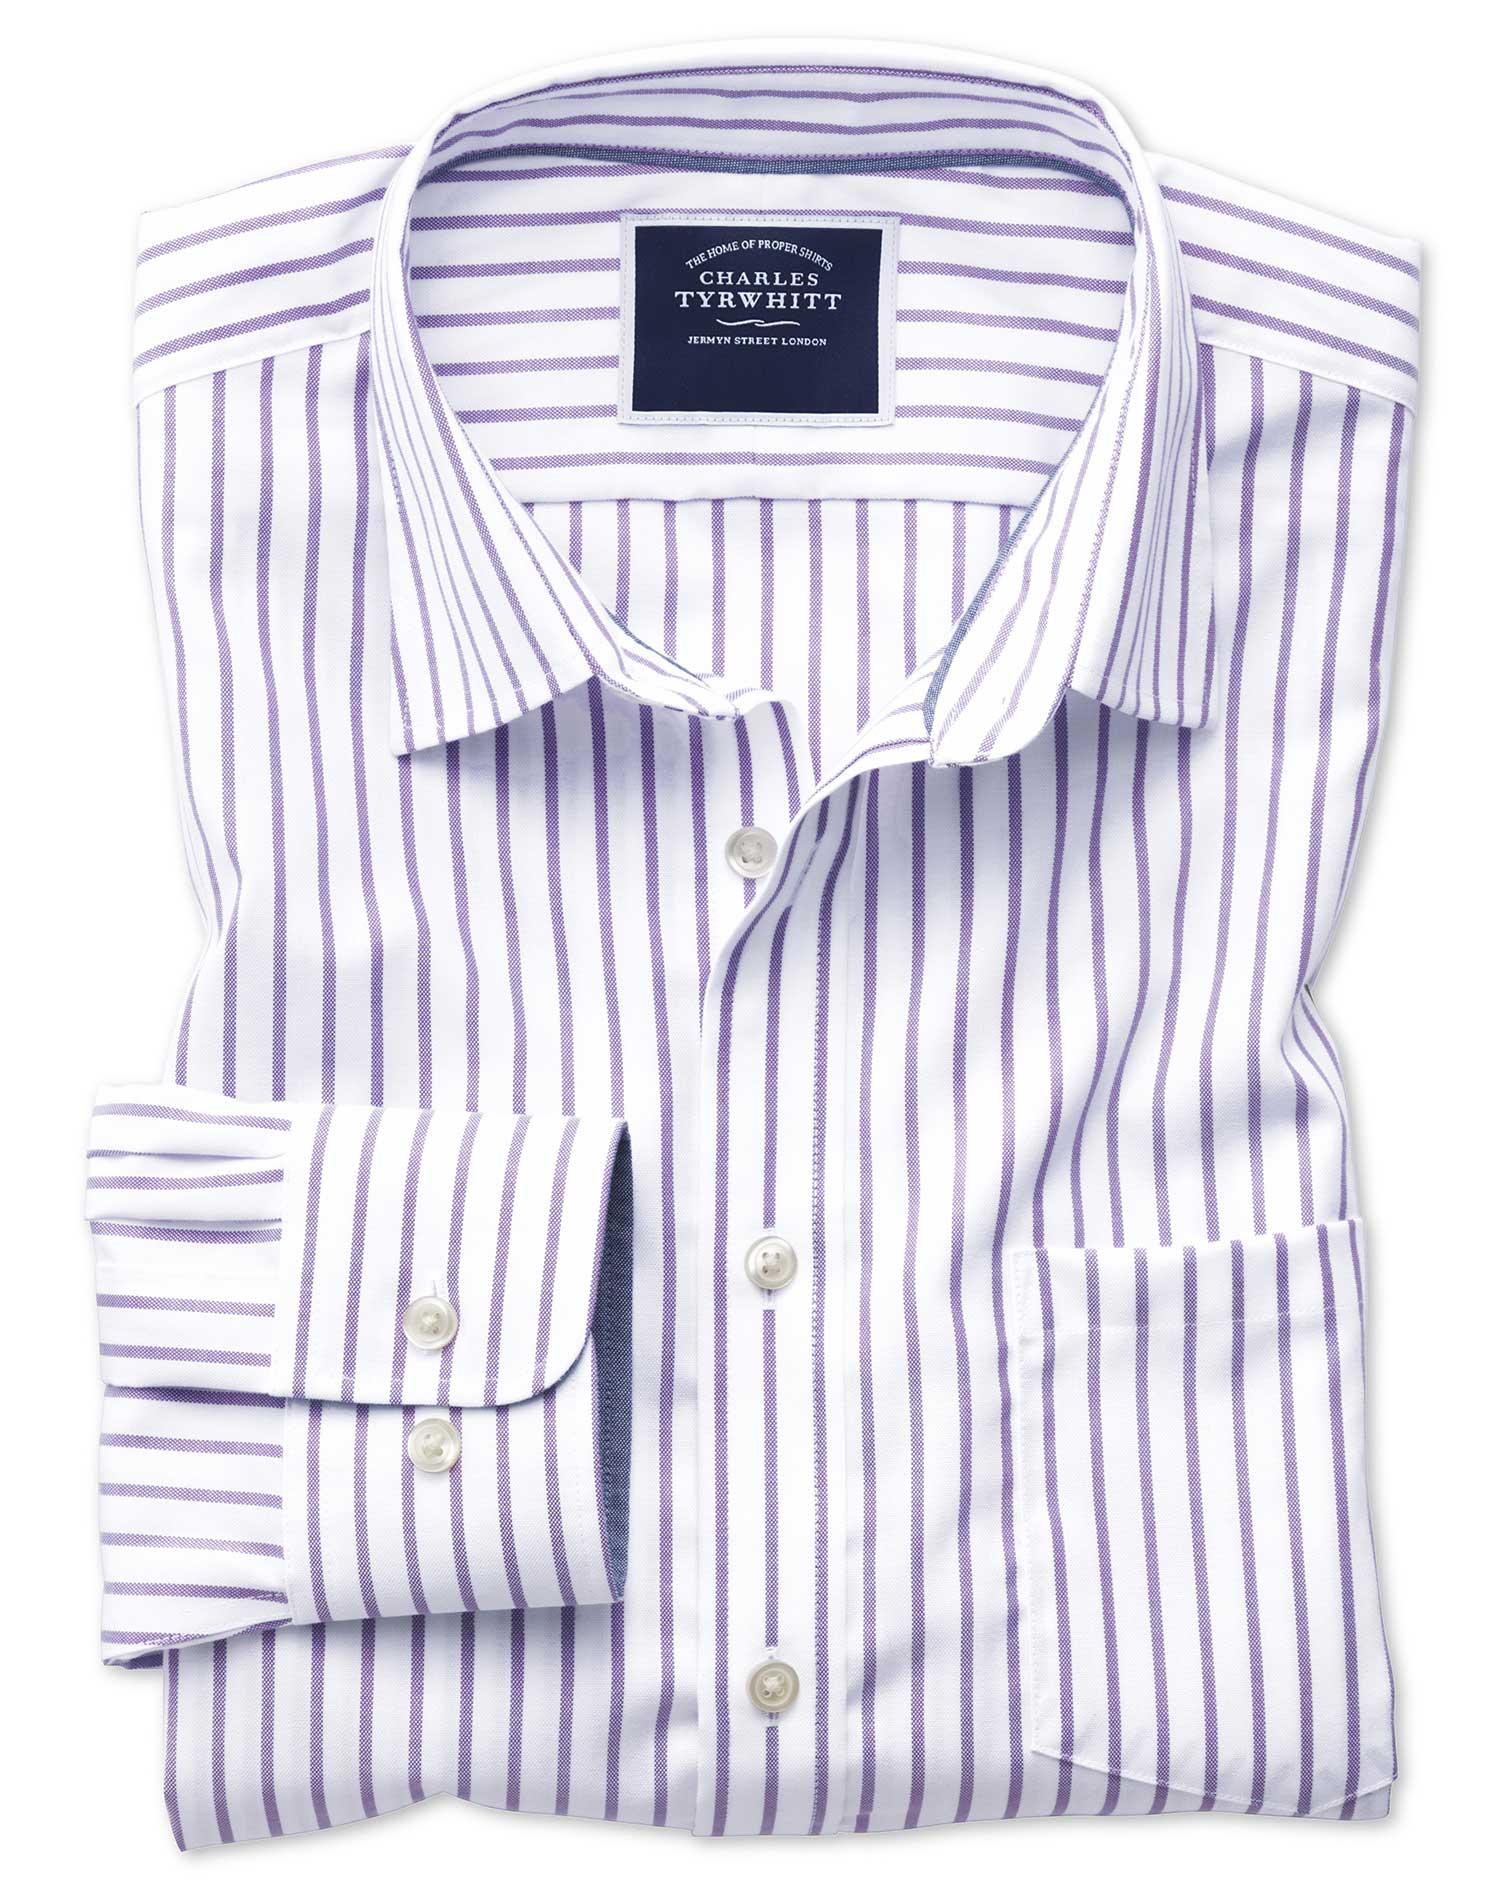 Slim Fit Non-Iron Oxford White and Lilac Stripe Cotton Shirt Single Cuff Size XS by Charles Tyrwhitt